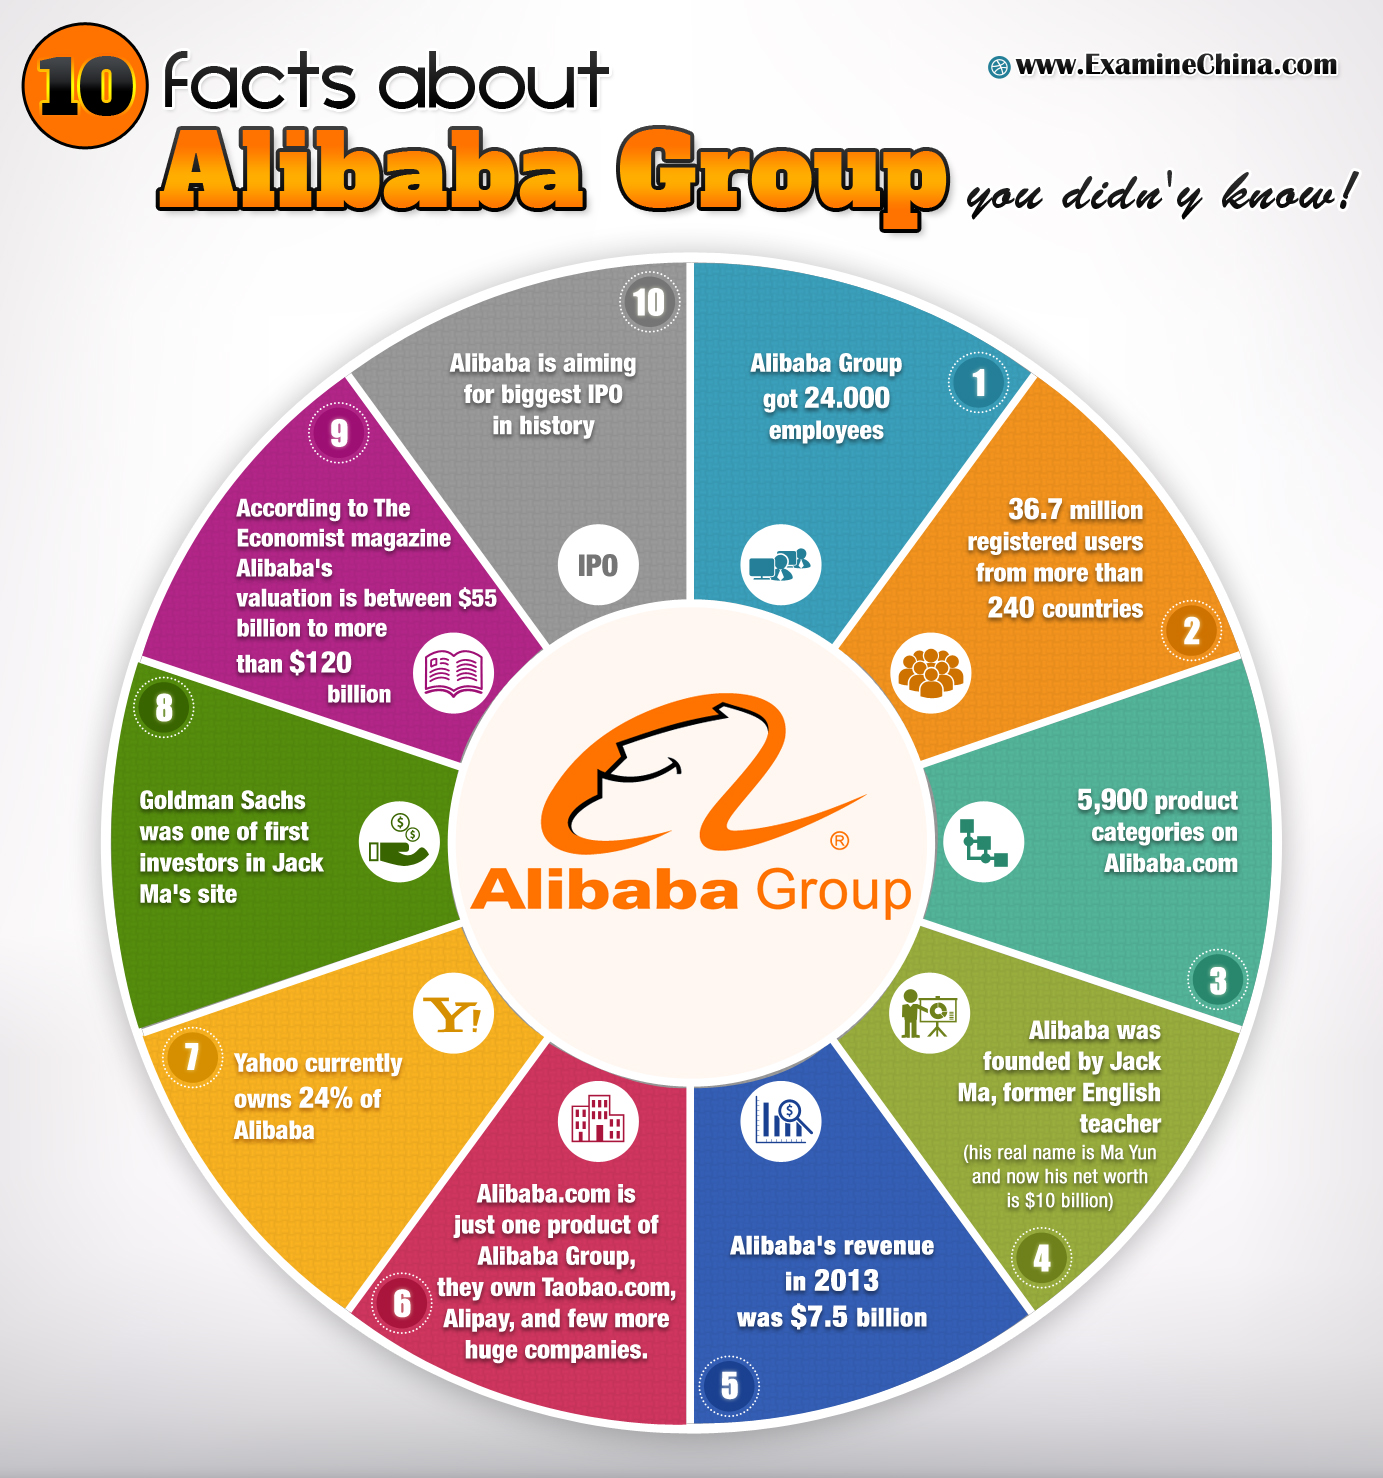 10 facts about Alibaba Group